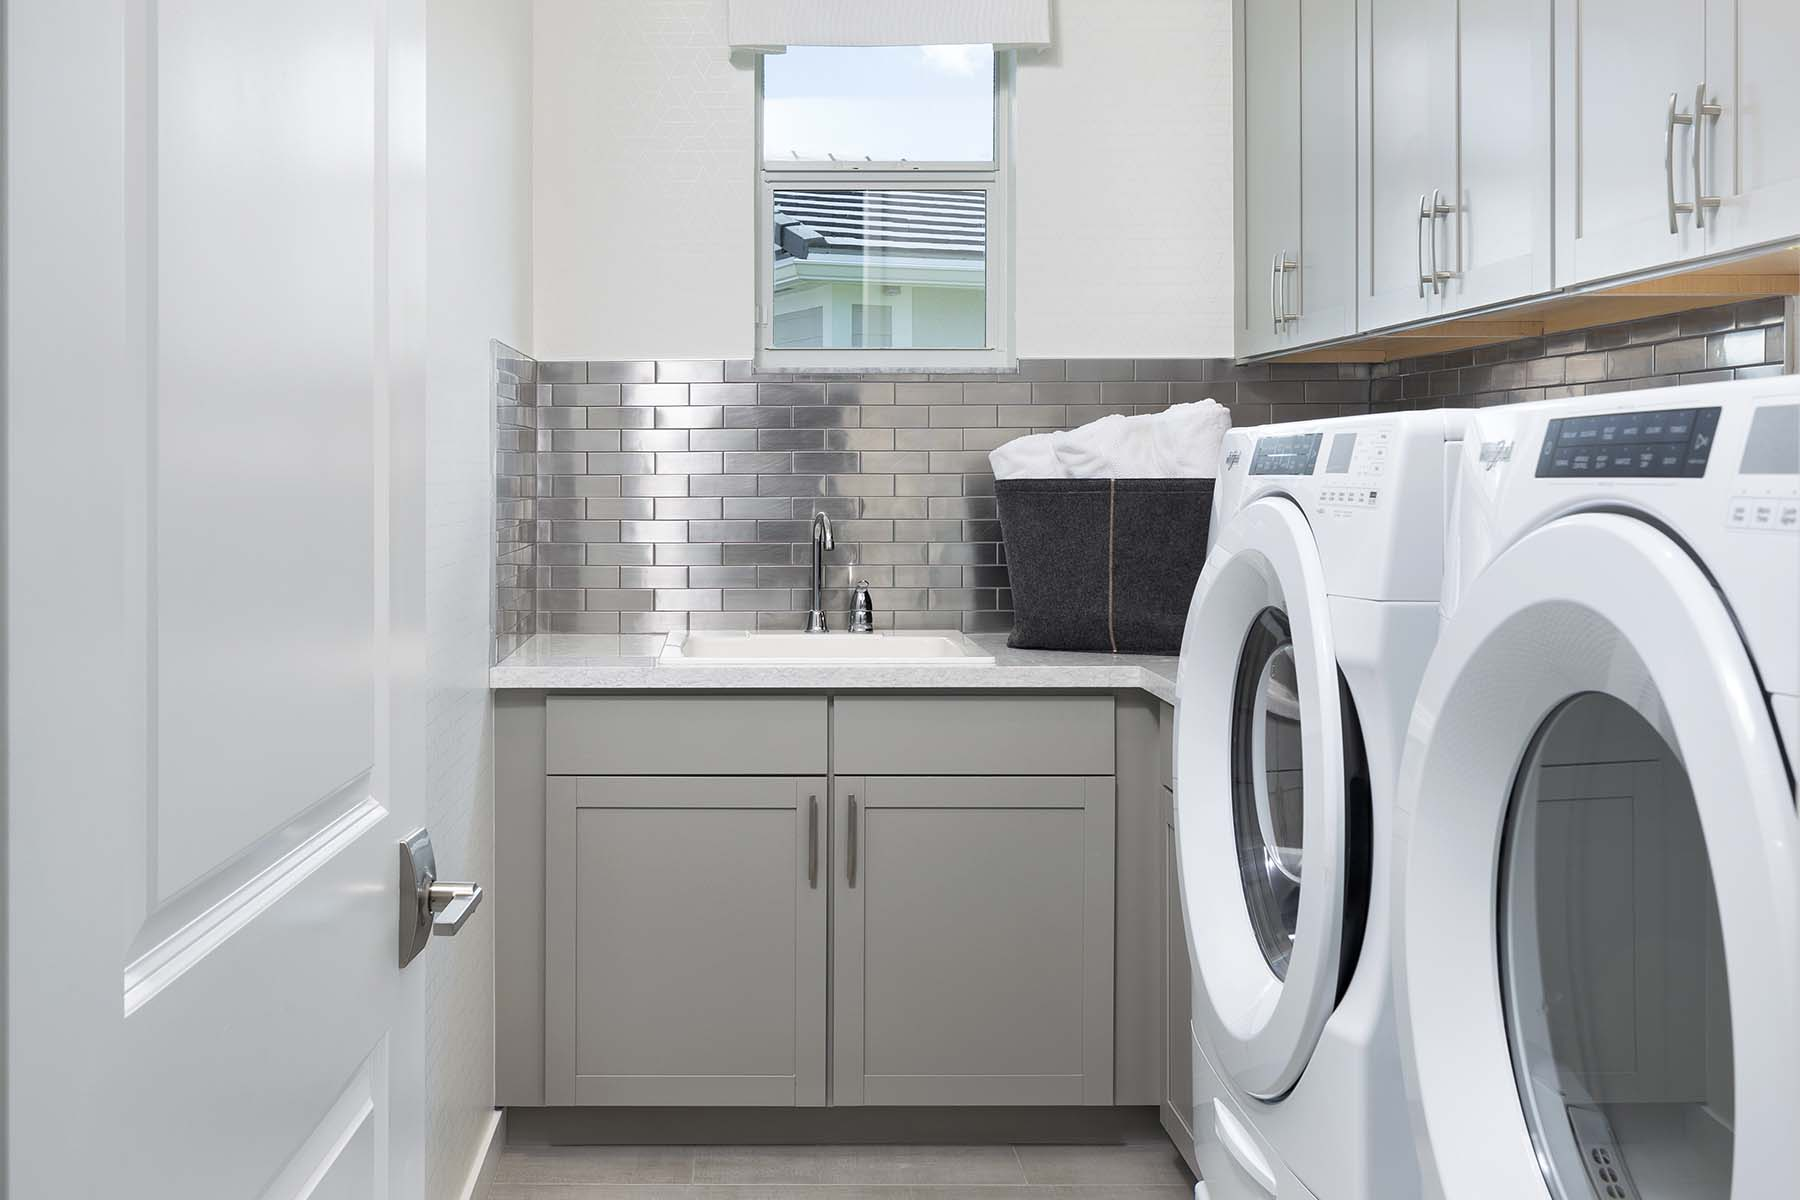 Rowan Plan Laundry at Tradition - Manderlie in Port St. Lucie Florida by Mattamy Homes